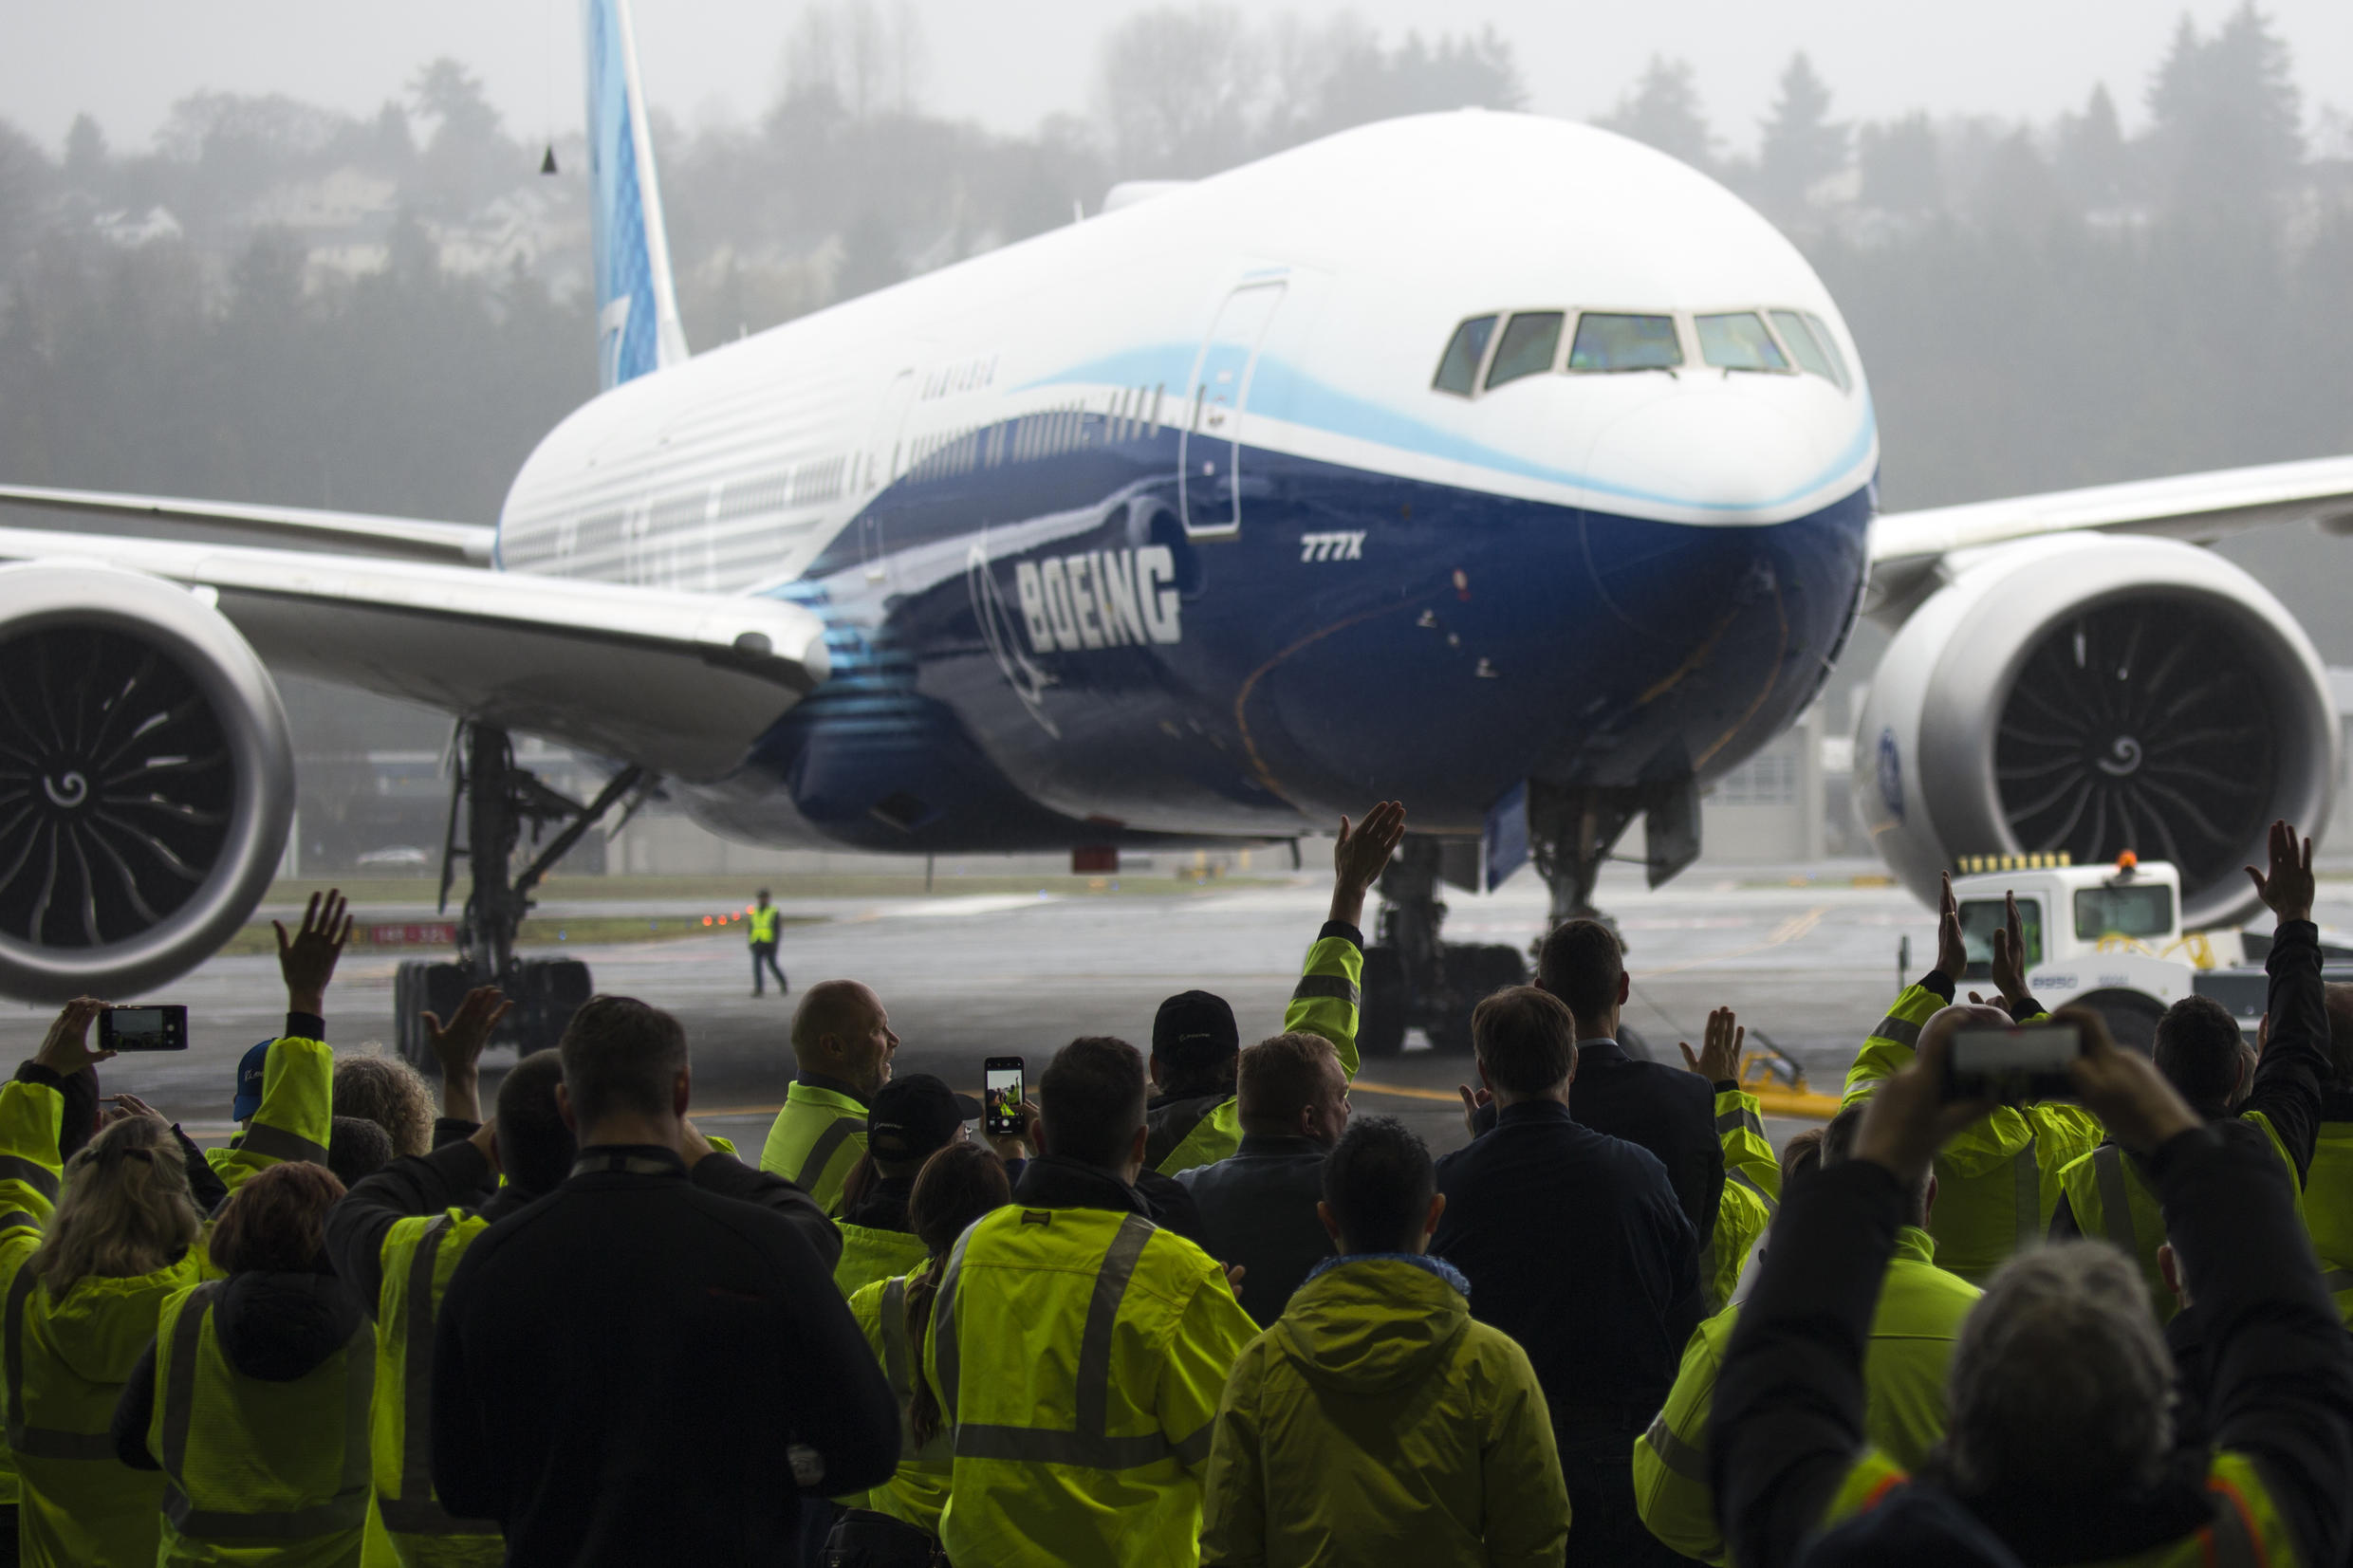 The coronavirus pandemic has forced aerospace giant Boeing to shut its factories in Washington state